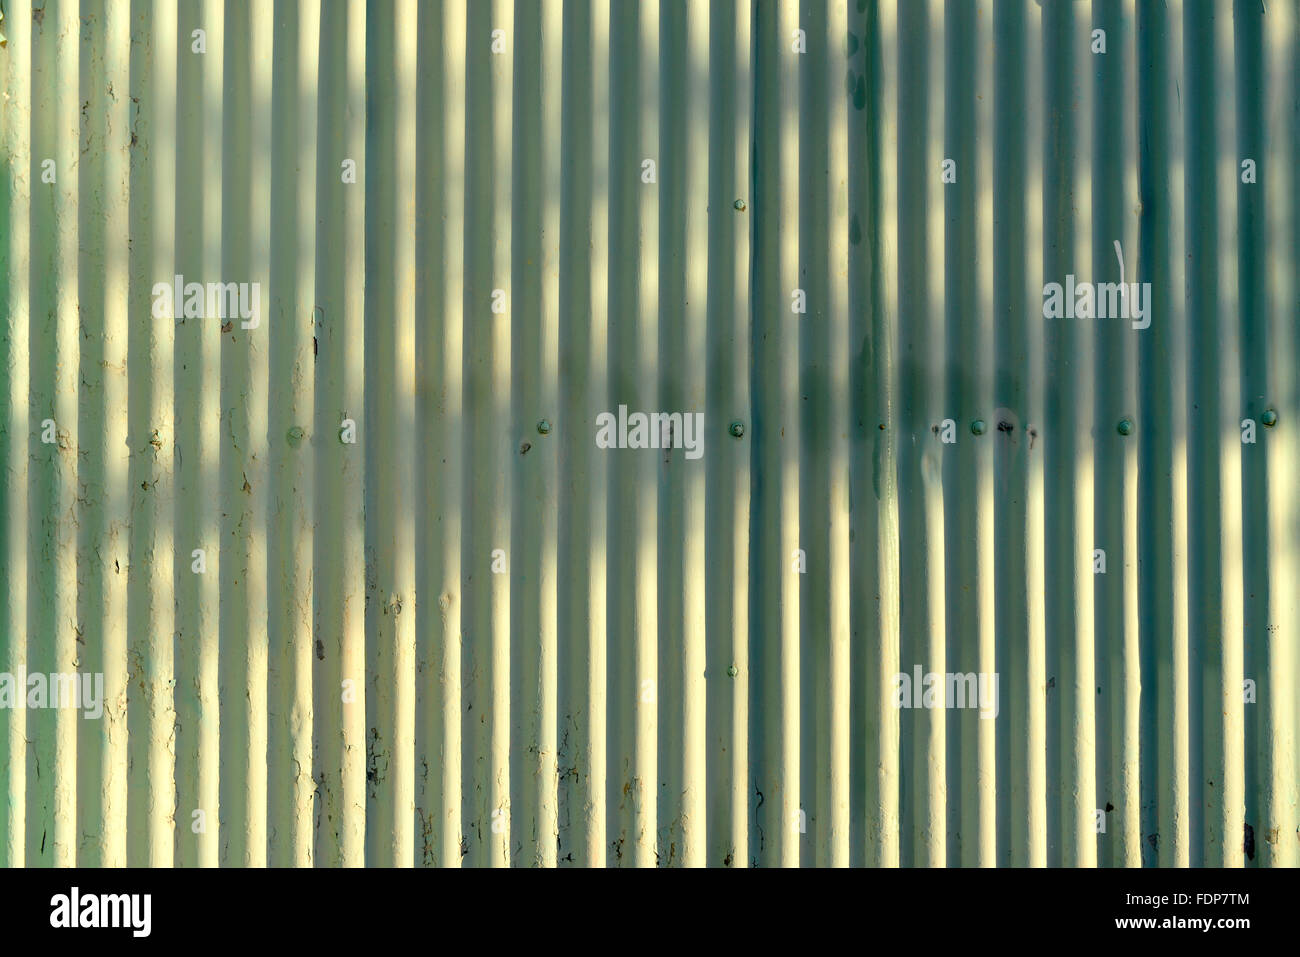 Green corrugated iron with rivets - Stock Image